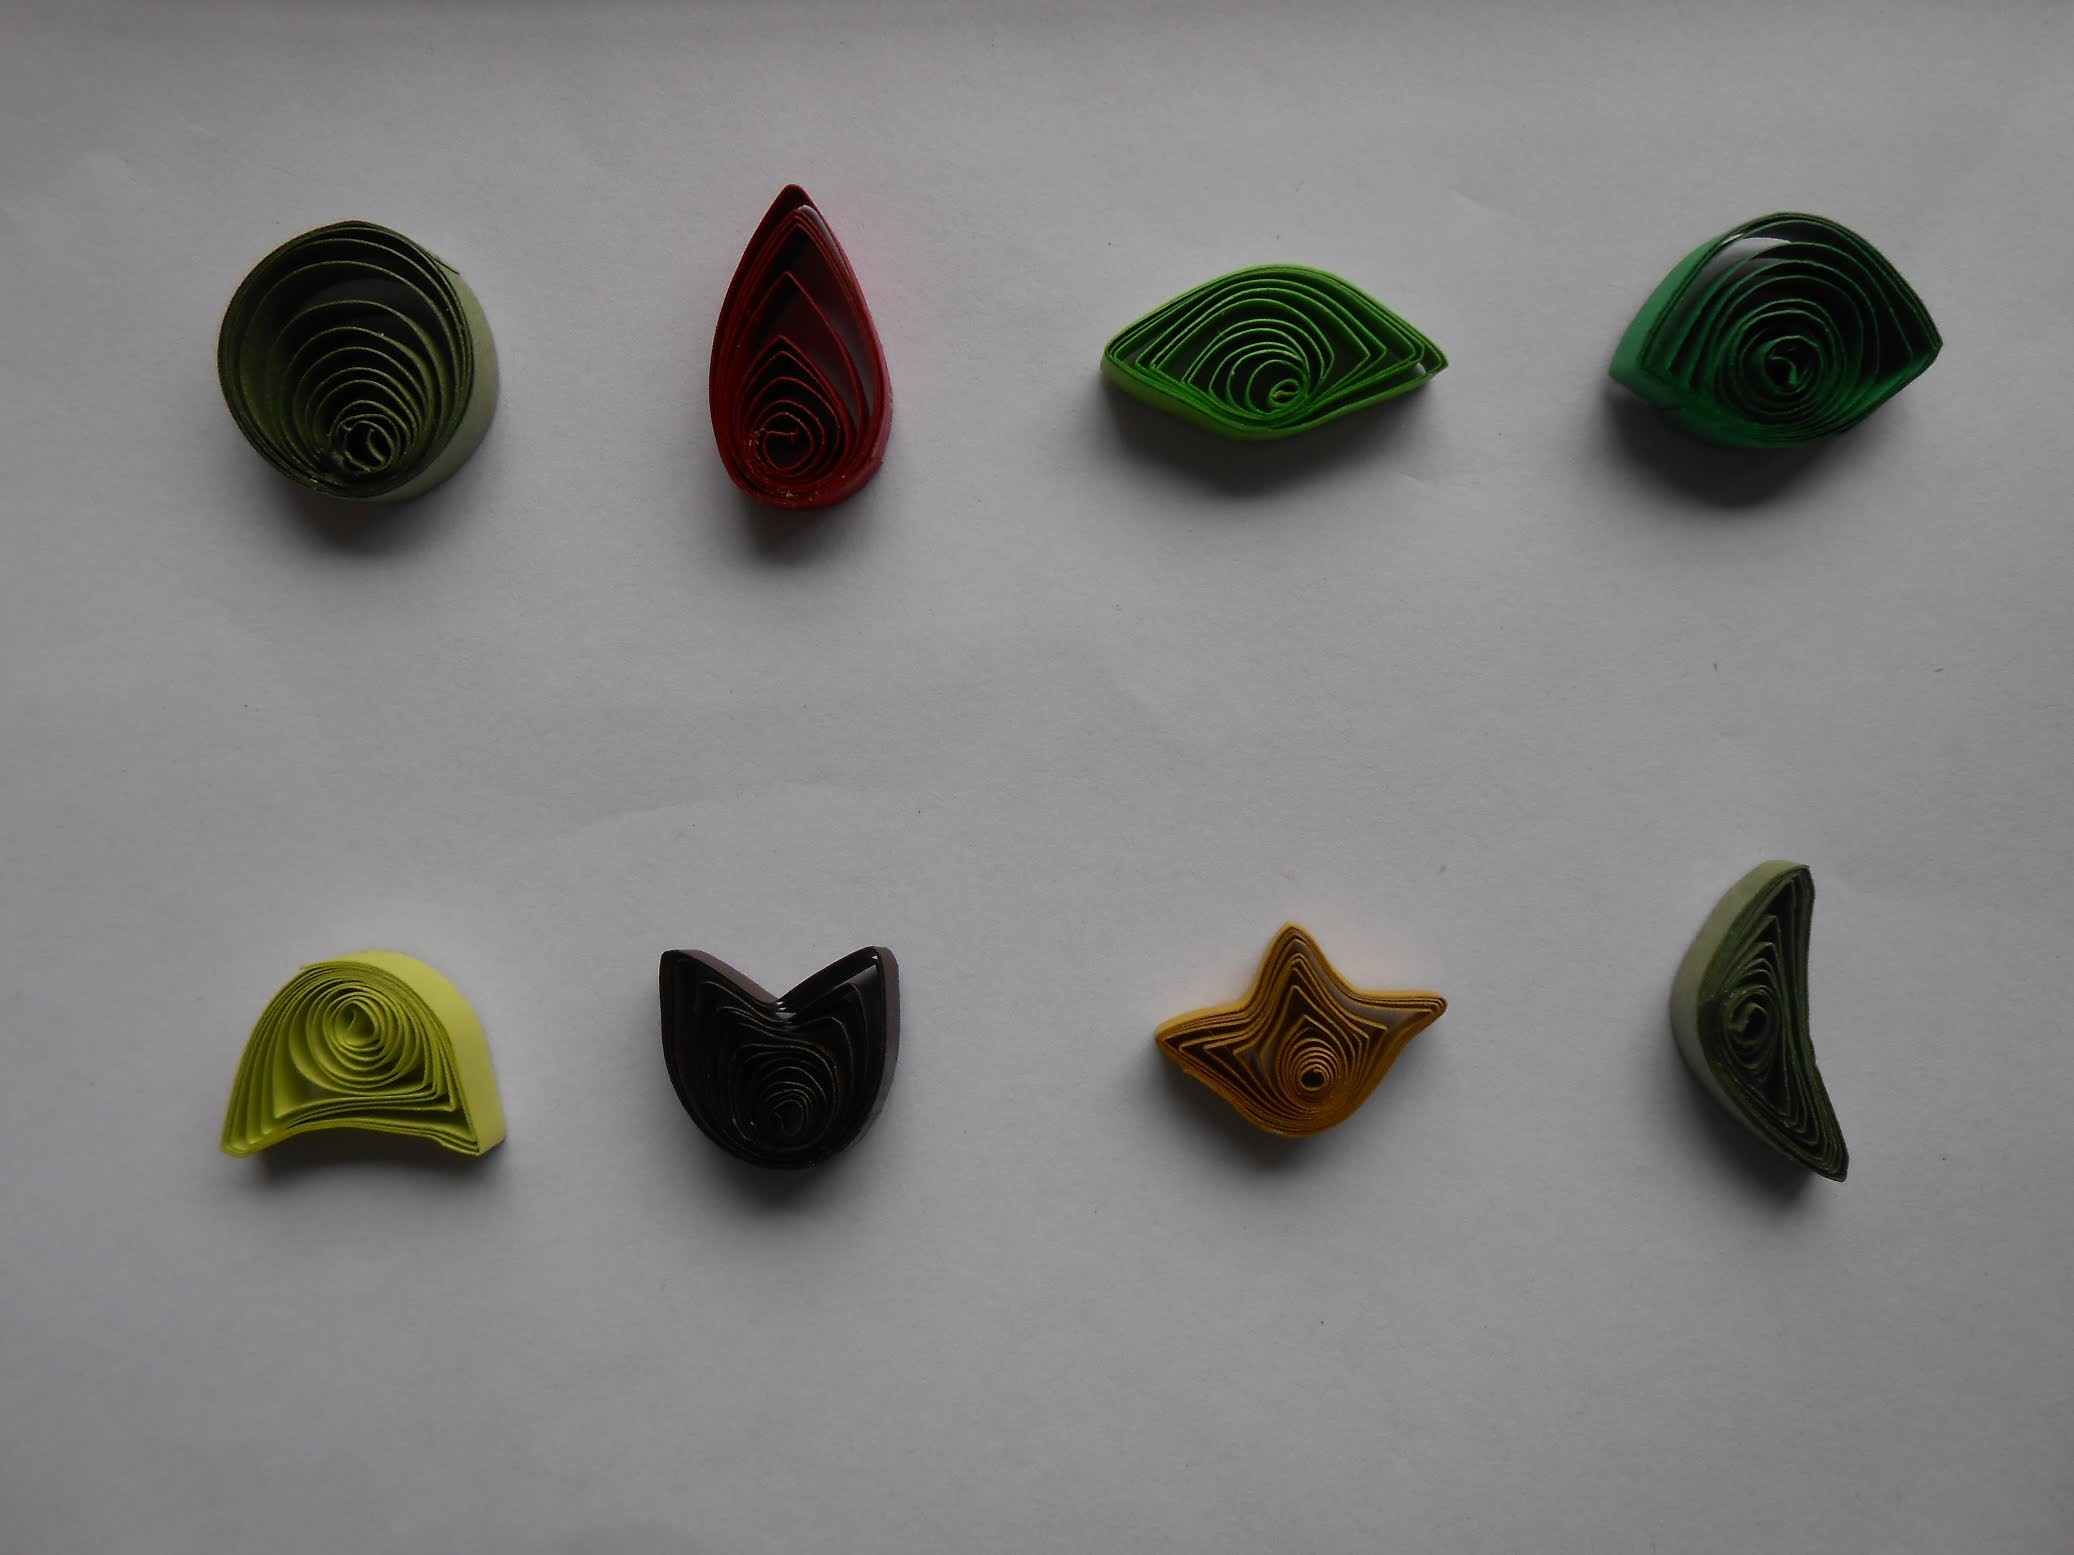 How to Make Basic Quilling Eccentric Coils - Tutorial Part 3 for Beginners